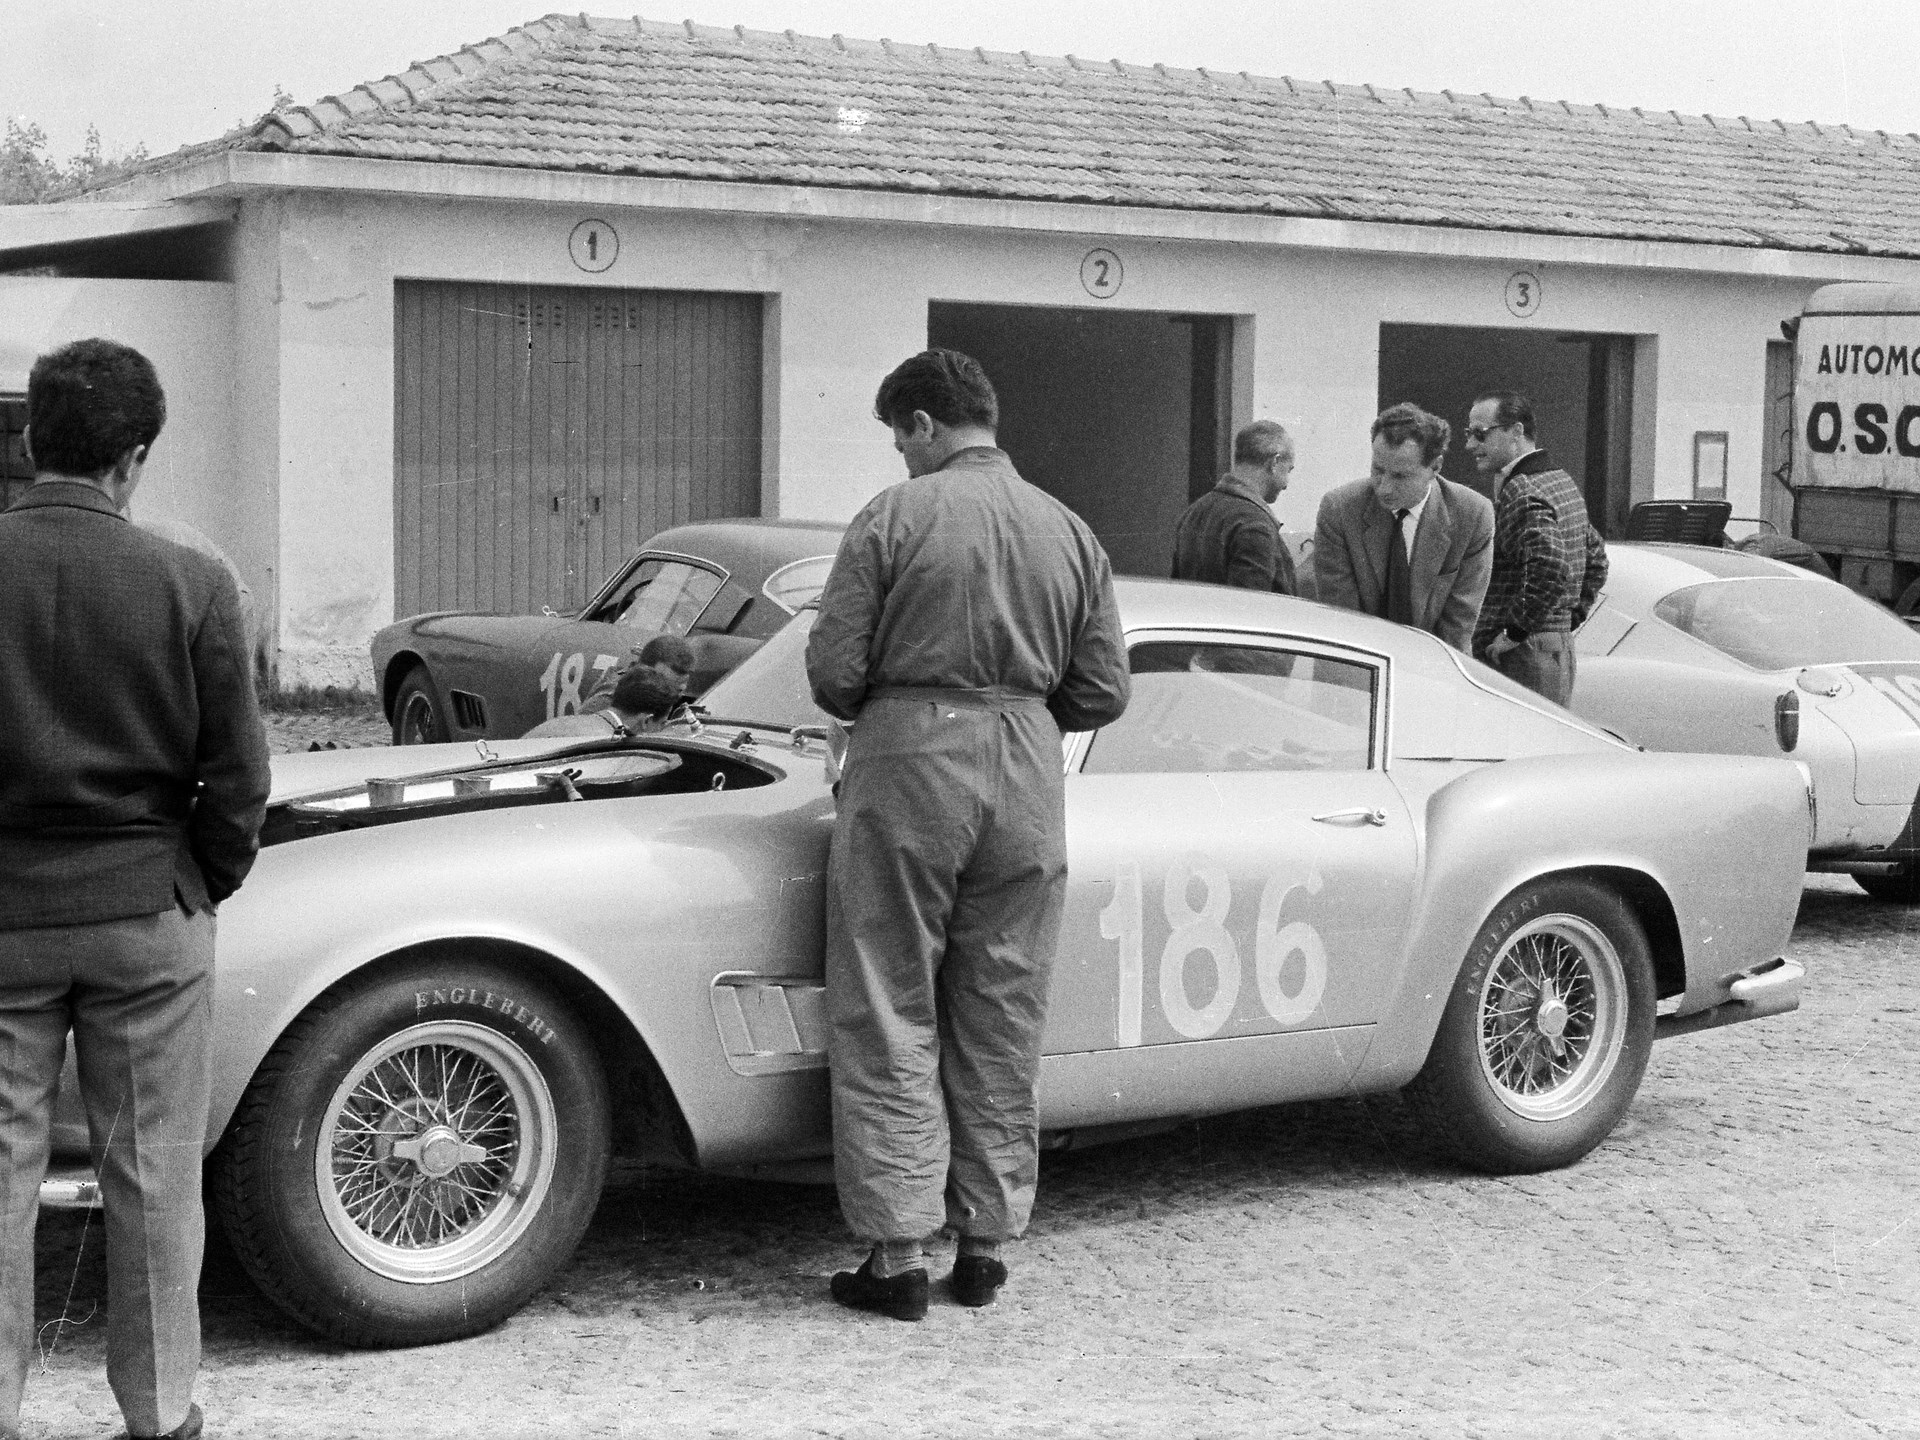 Pierre Noblet, #186, 3rd OA. Coppa Sant'Ambroeus, Monza, May 3, 1959.